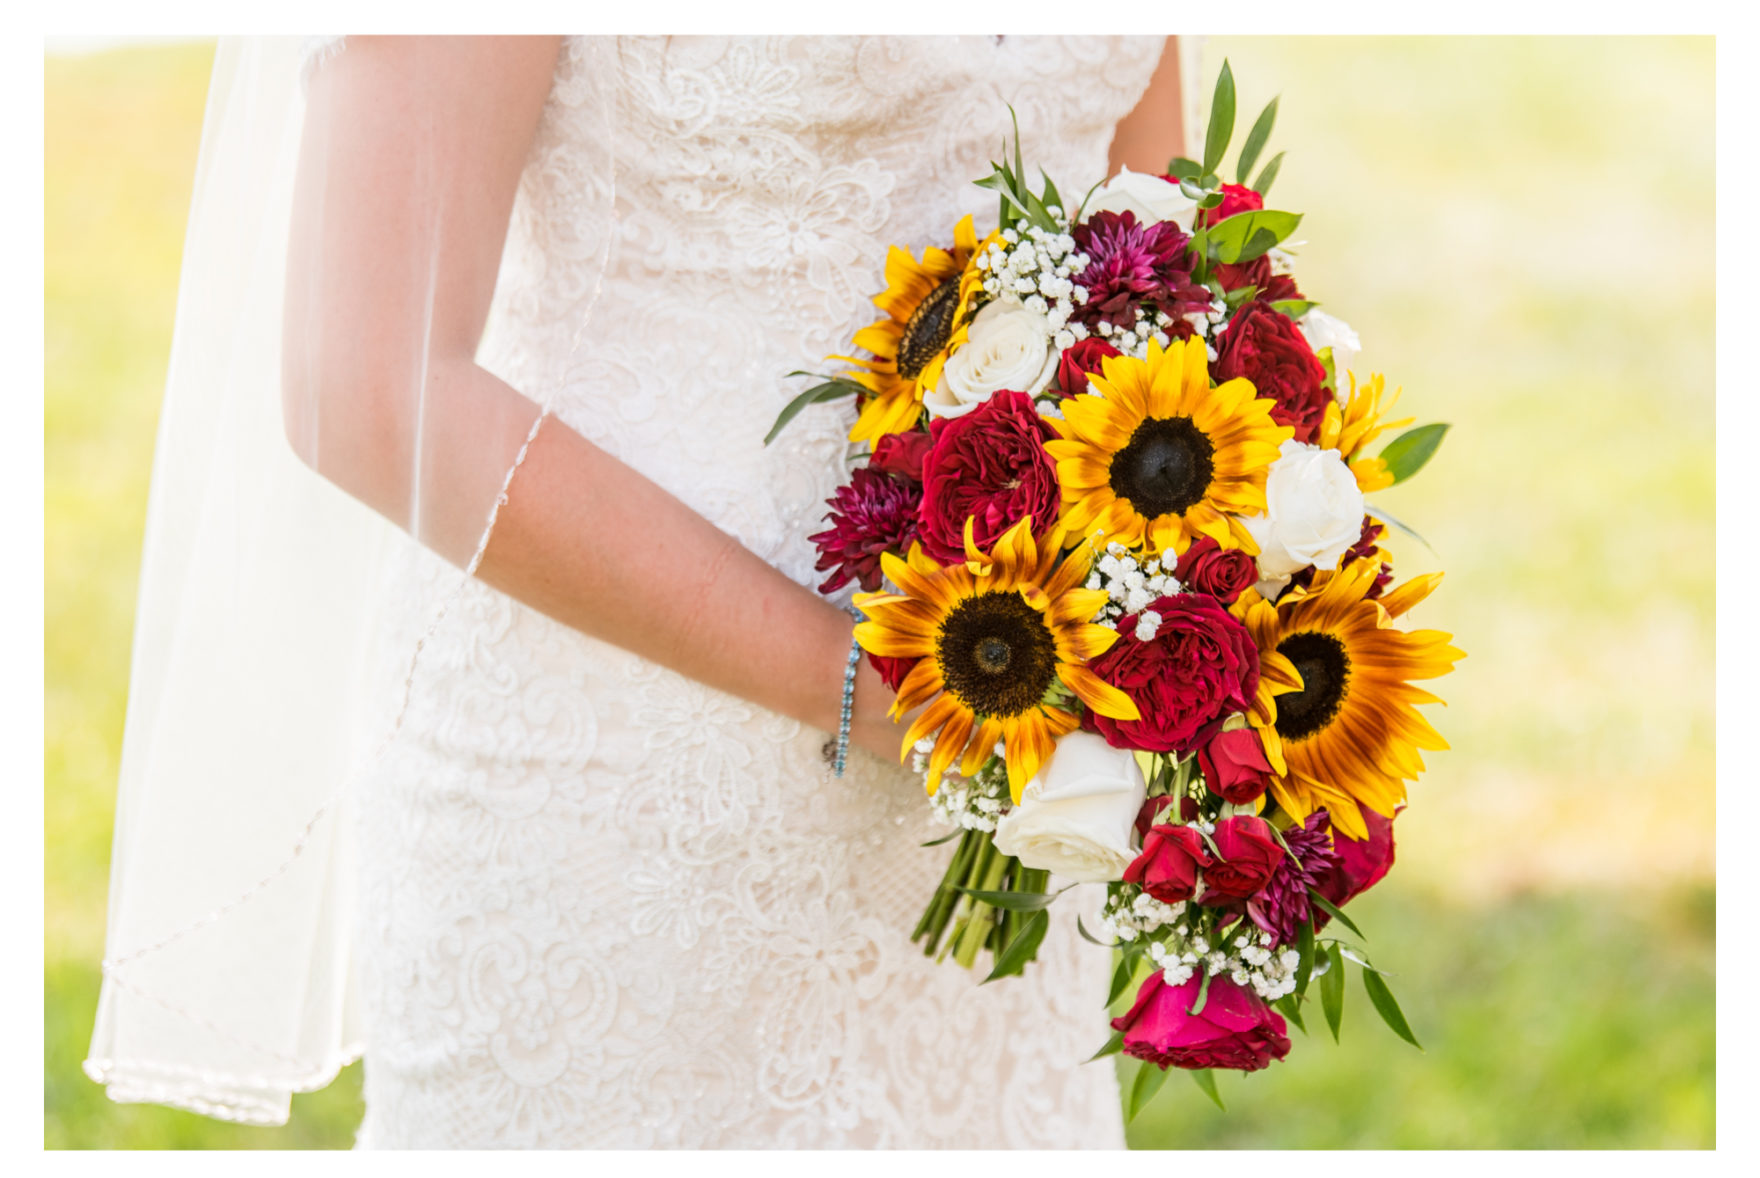 September Wedding. Fall Wedding. Hot September Day. Frederick Wedding Photographer. Stone Ridge Hollow. Forest Hill Maryland. Frederick Weddings. Sunflowers and Mums. Fall wedding decor. Waterfront Wedding. Farm Wedding. Barn Wedding. Deceased father of the bride.